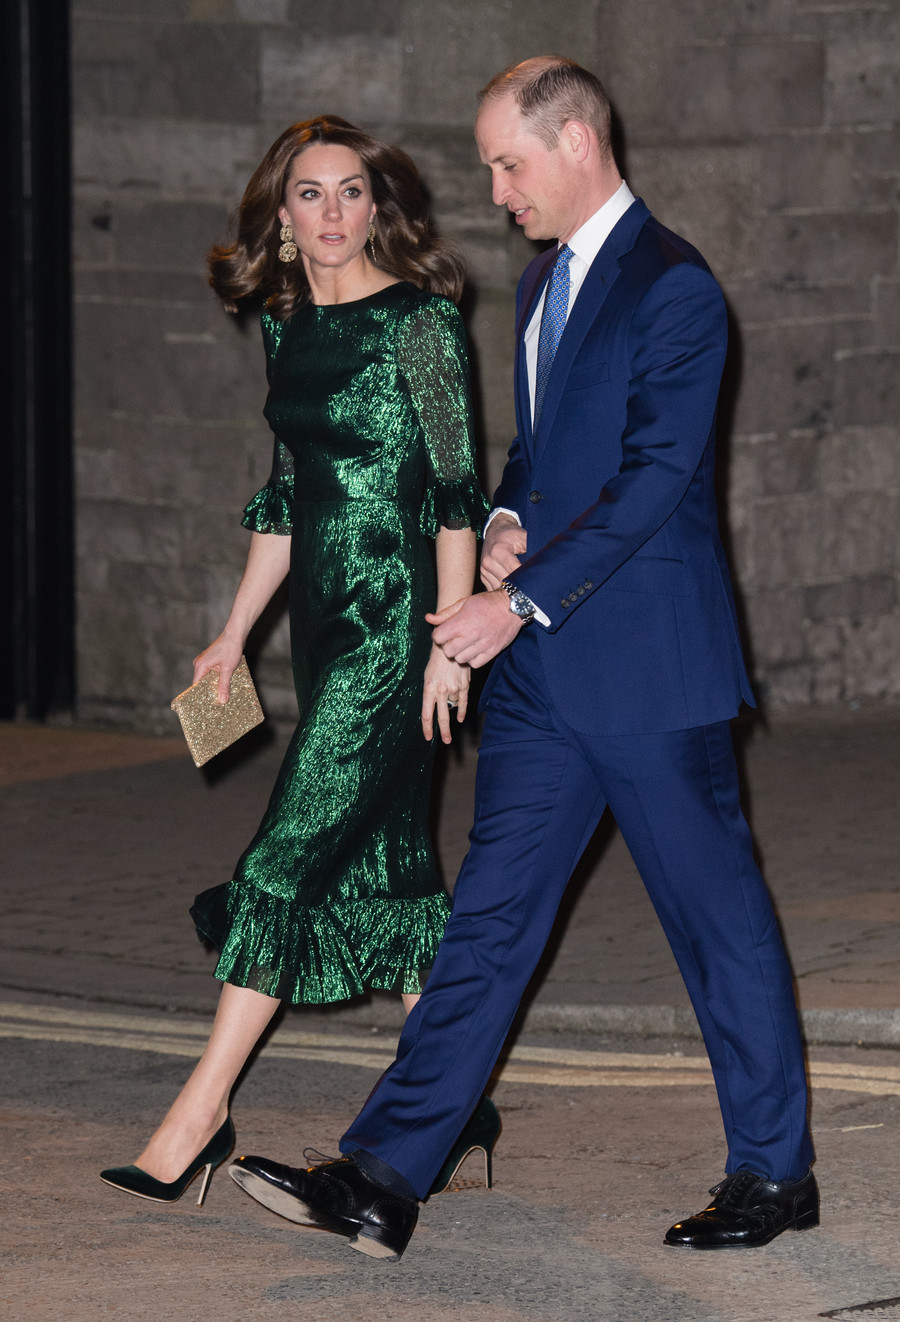 Kate Middleton / Pool/Samir Hussein /GettyImages